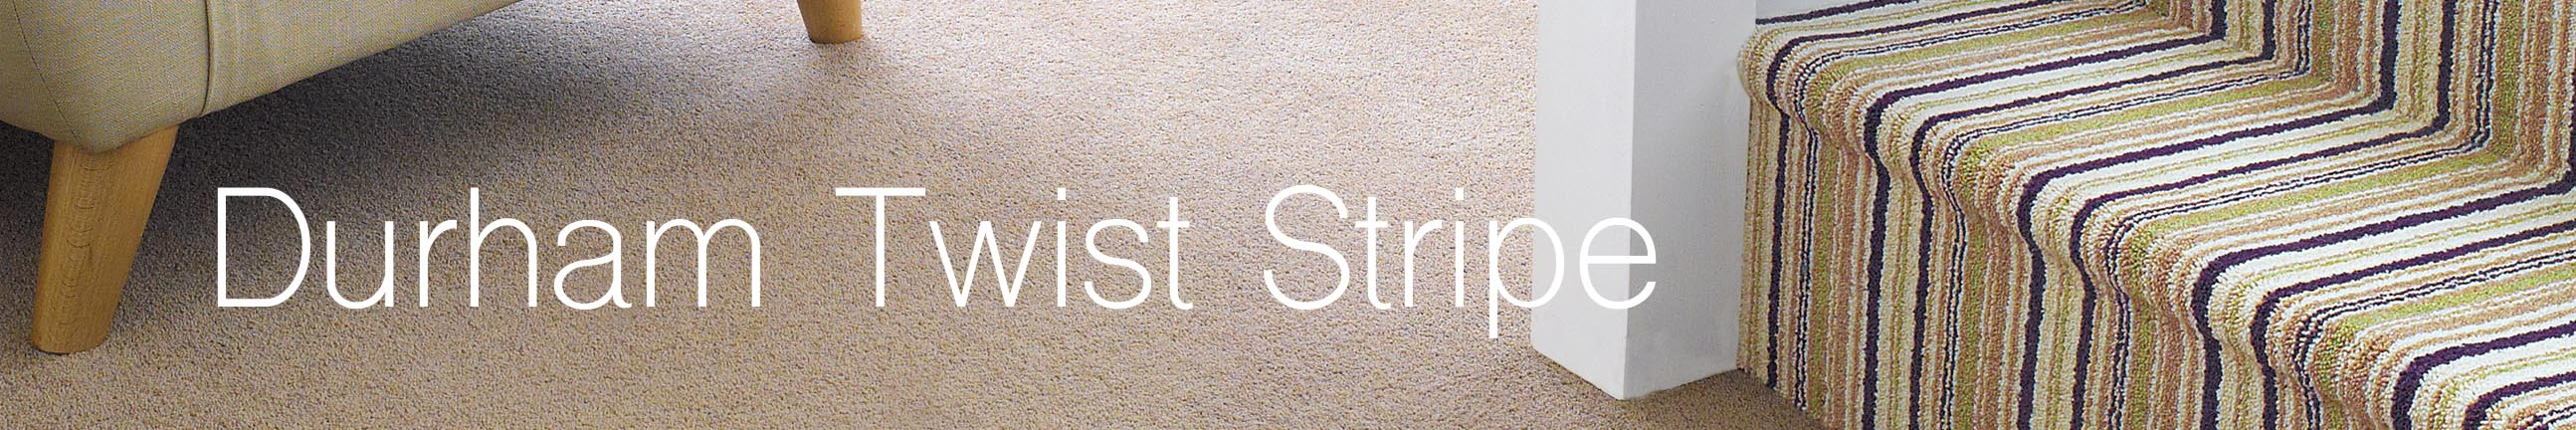 Durham Twist Stripe Carpet Header